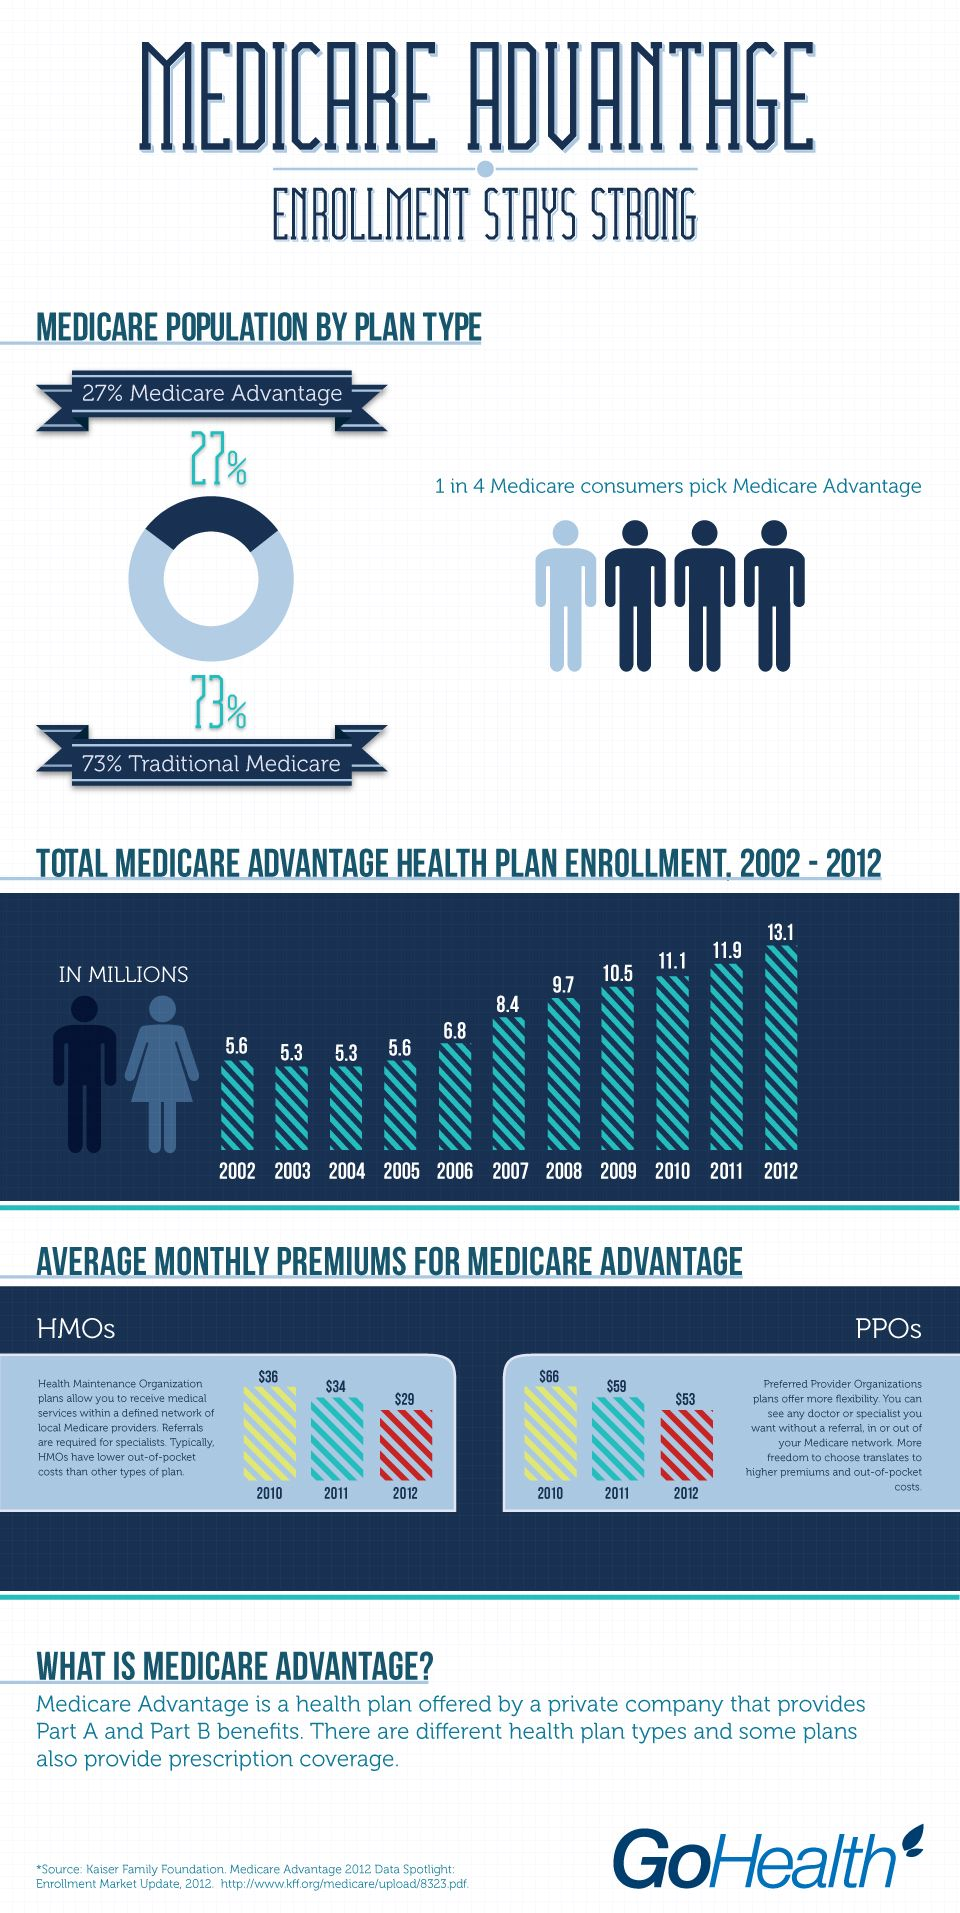 Medicare Advantage Enrollment Stays Strong Over The Past 10 Years